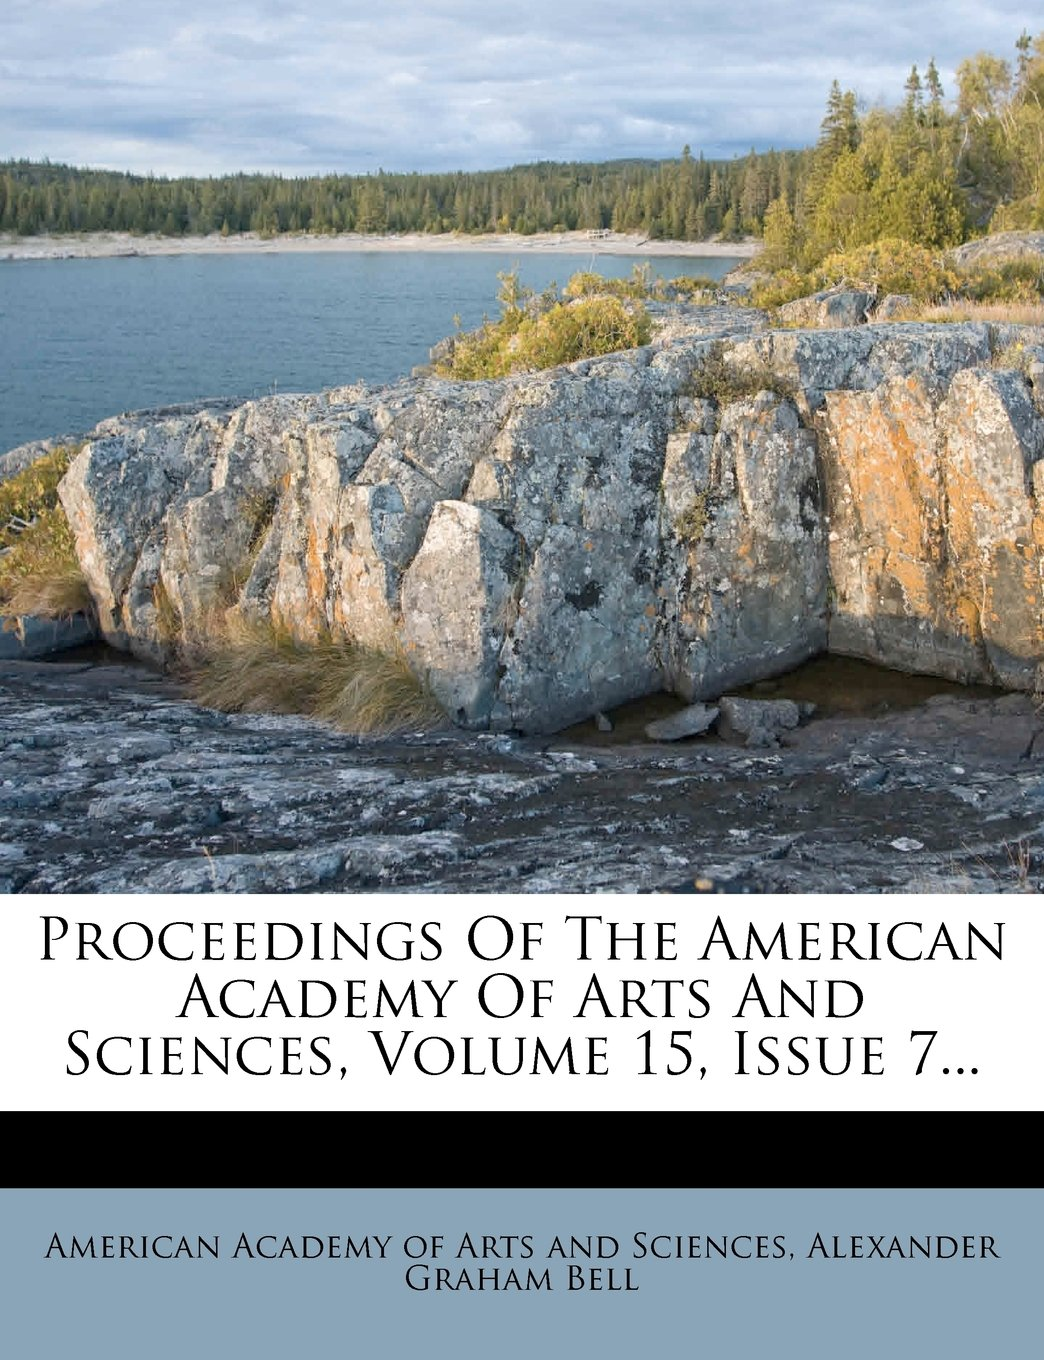 Download Proceedings Of The American Academy Of Arts And Sciences, Volume 15, Issue 7... ebook